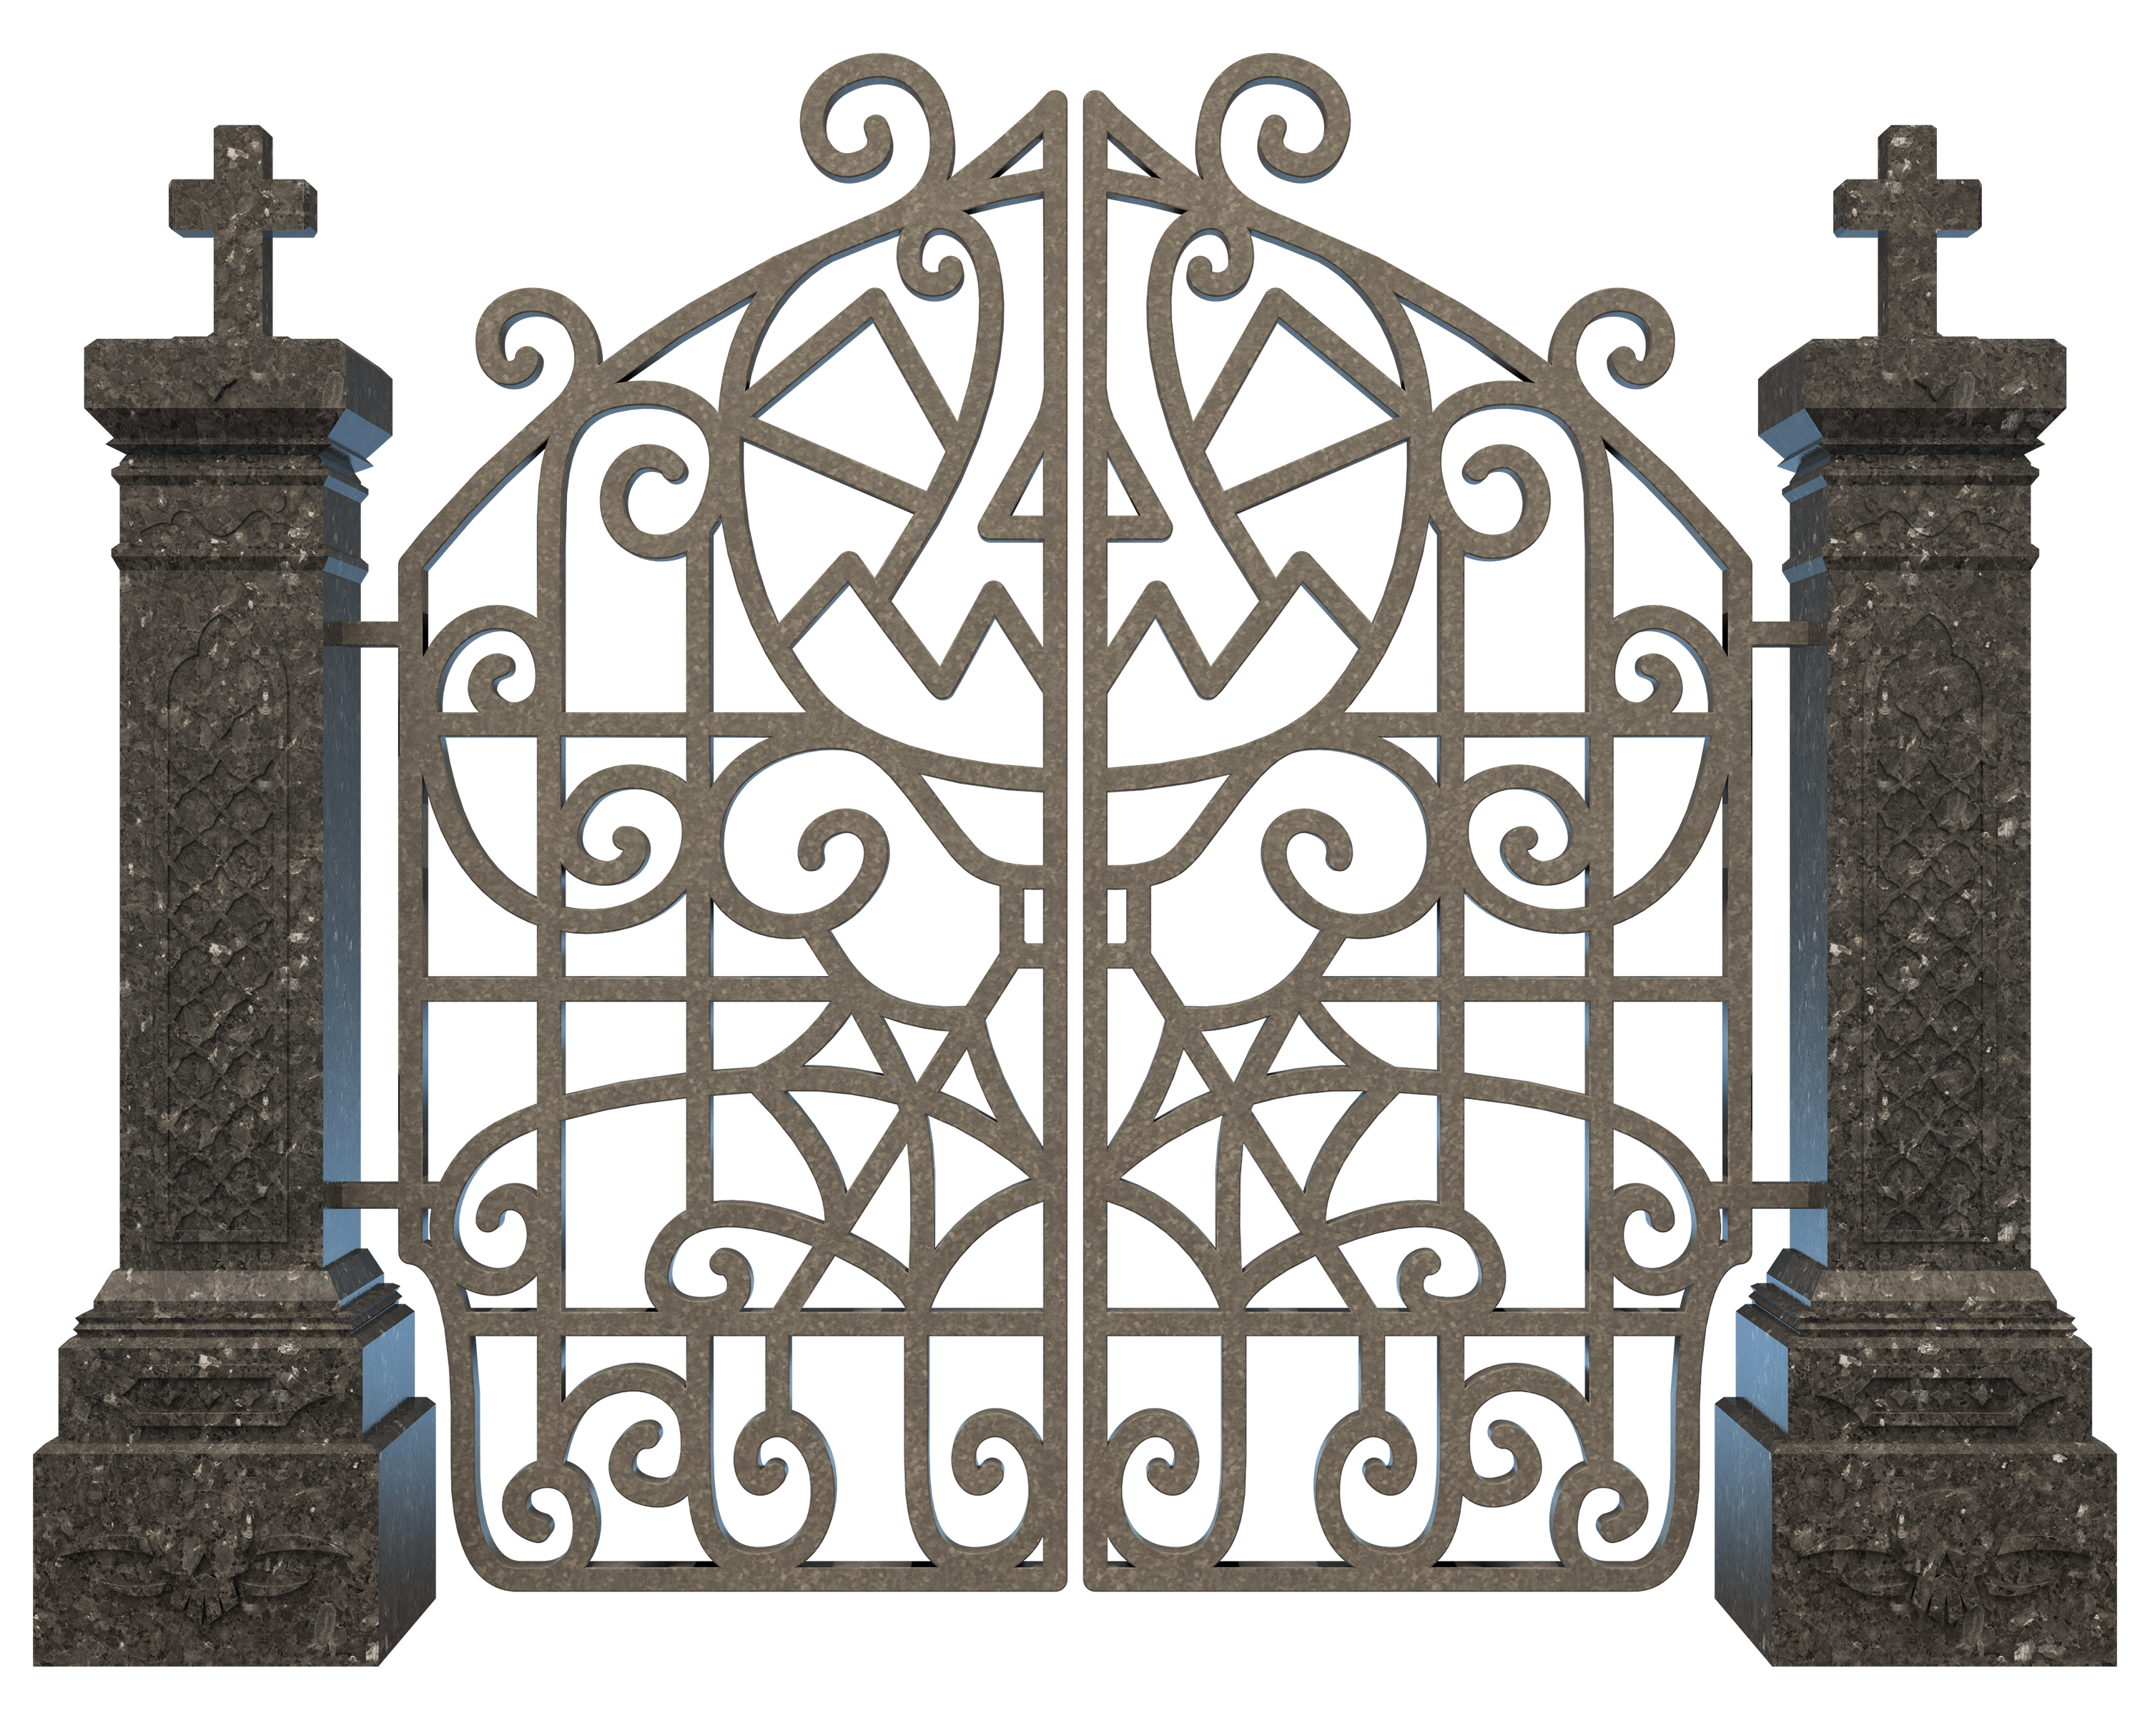 Gate clipart creepy. Halloween graveyard png image